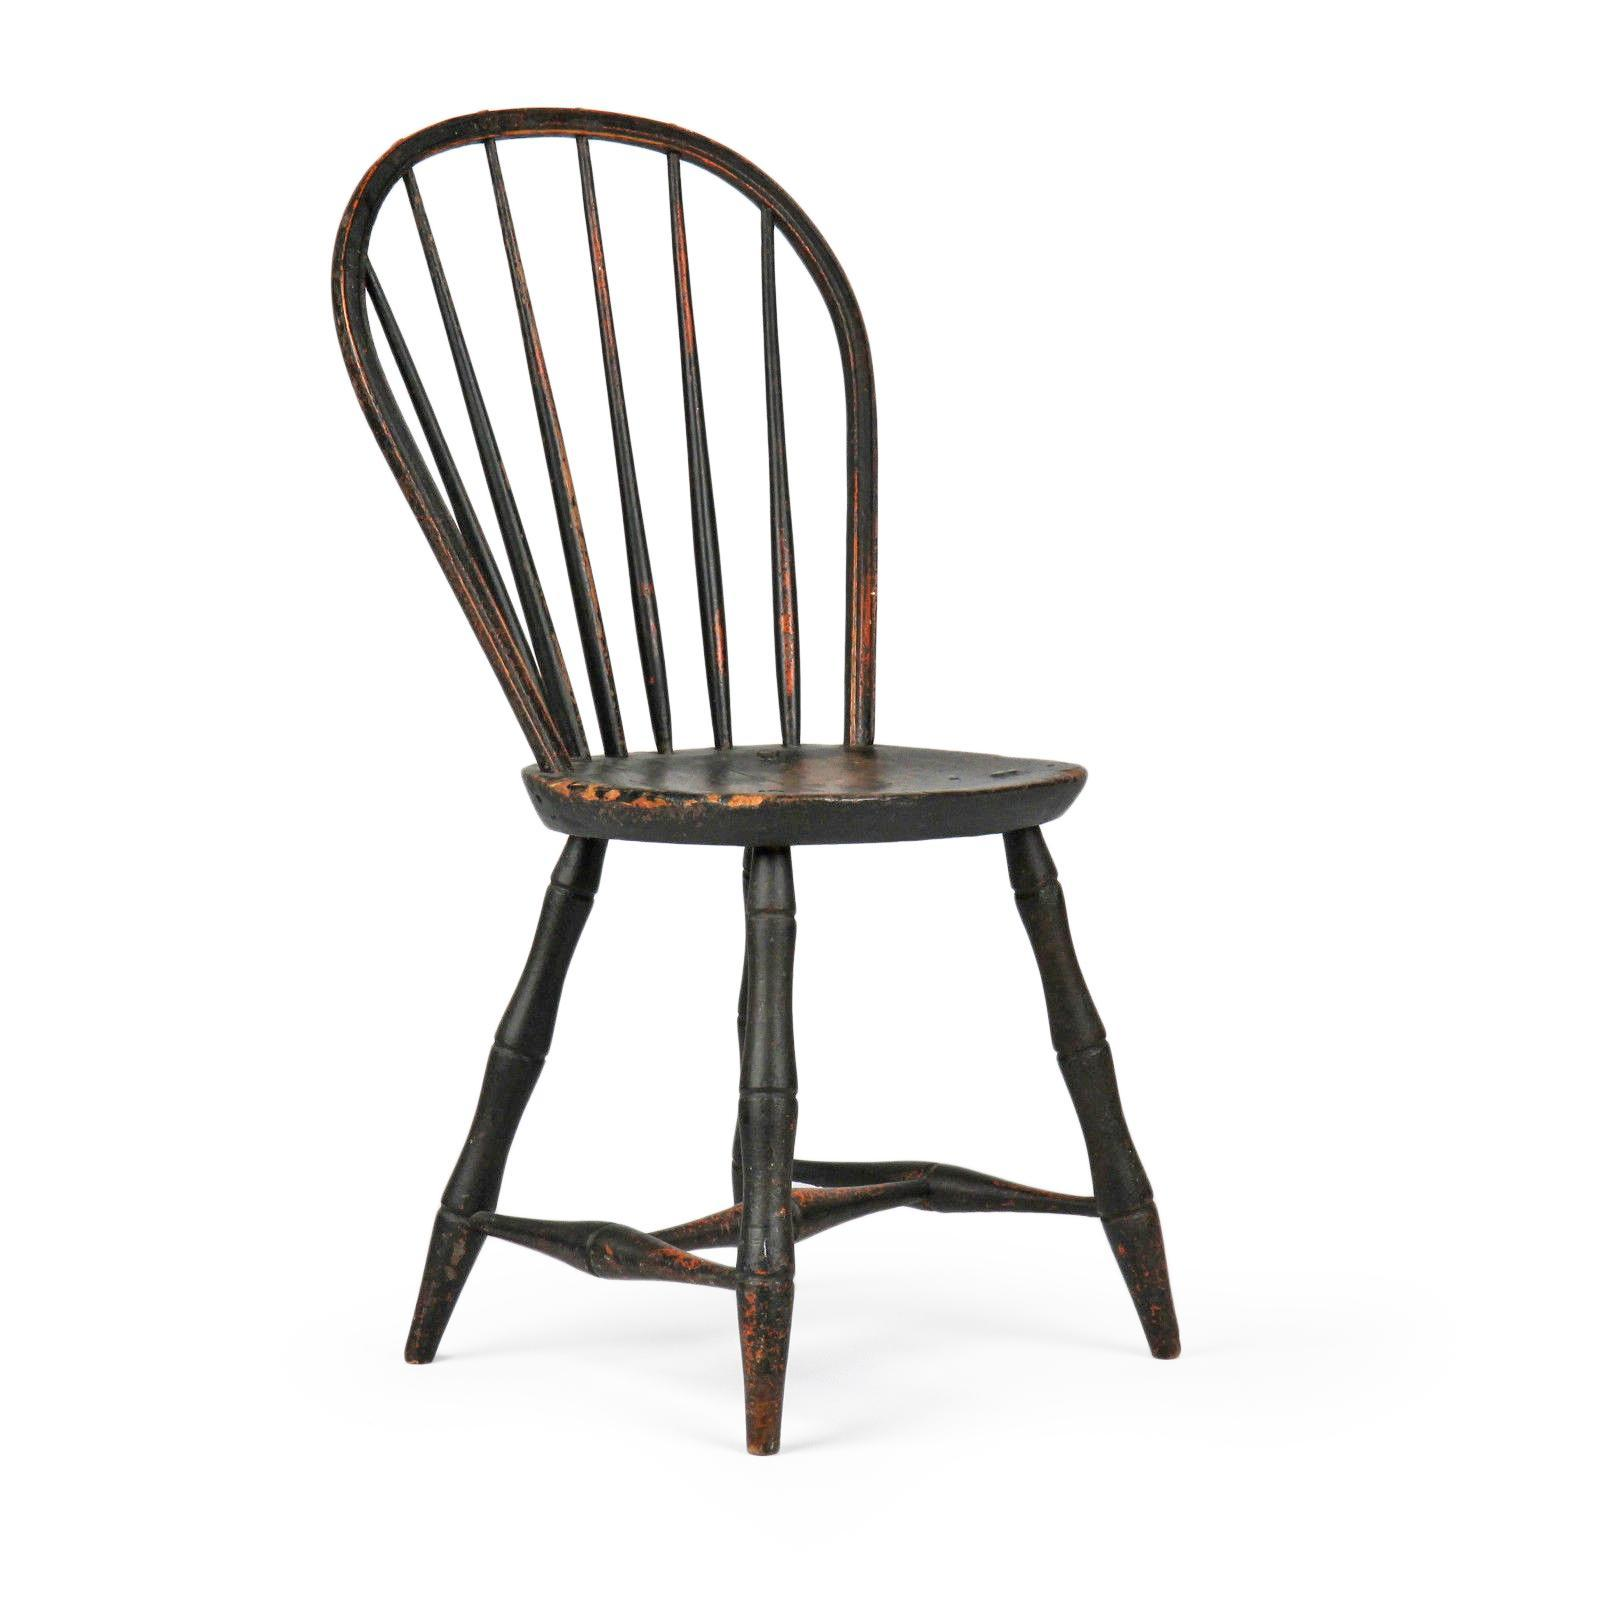 Antique windsor chair - Roll Over Large Image To Magnify Click Large Image To Zoom